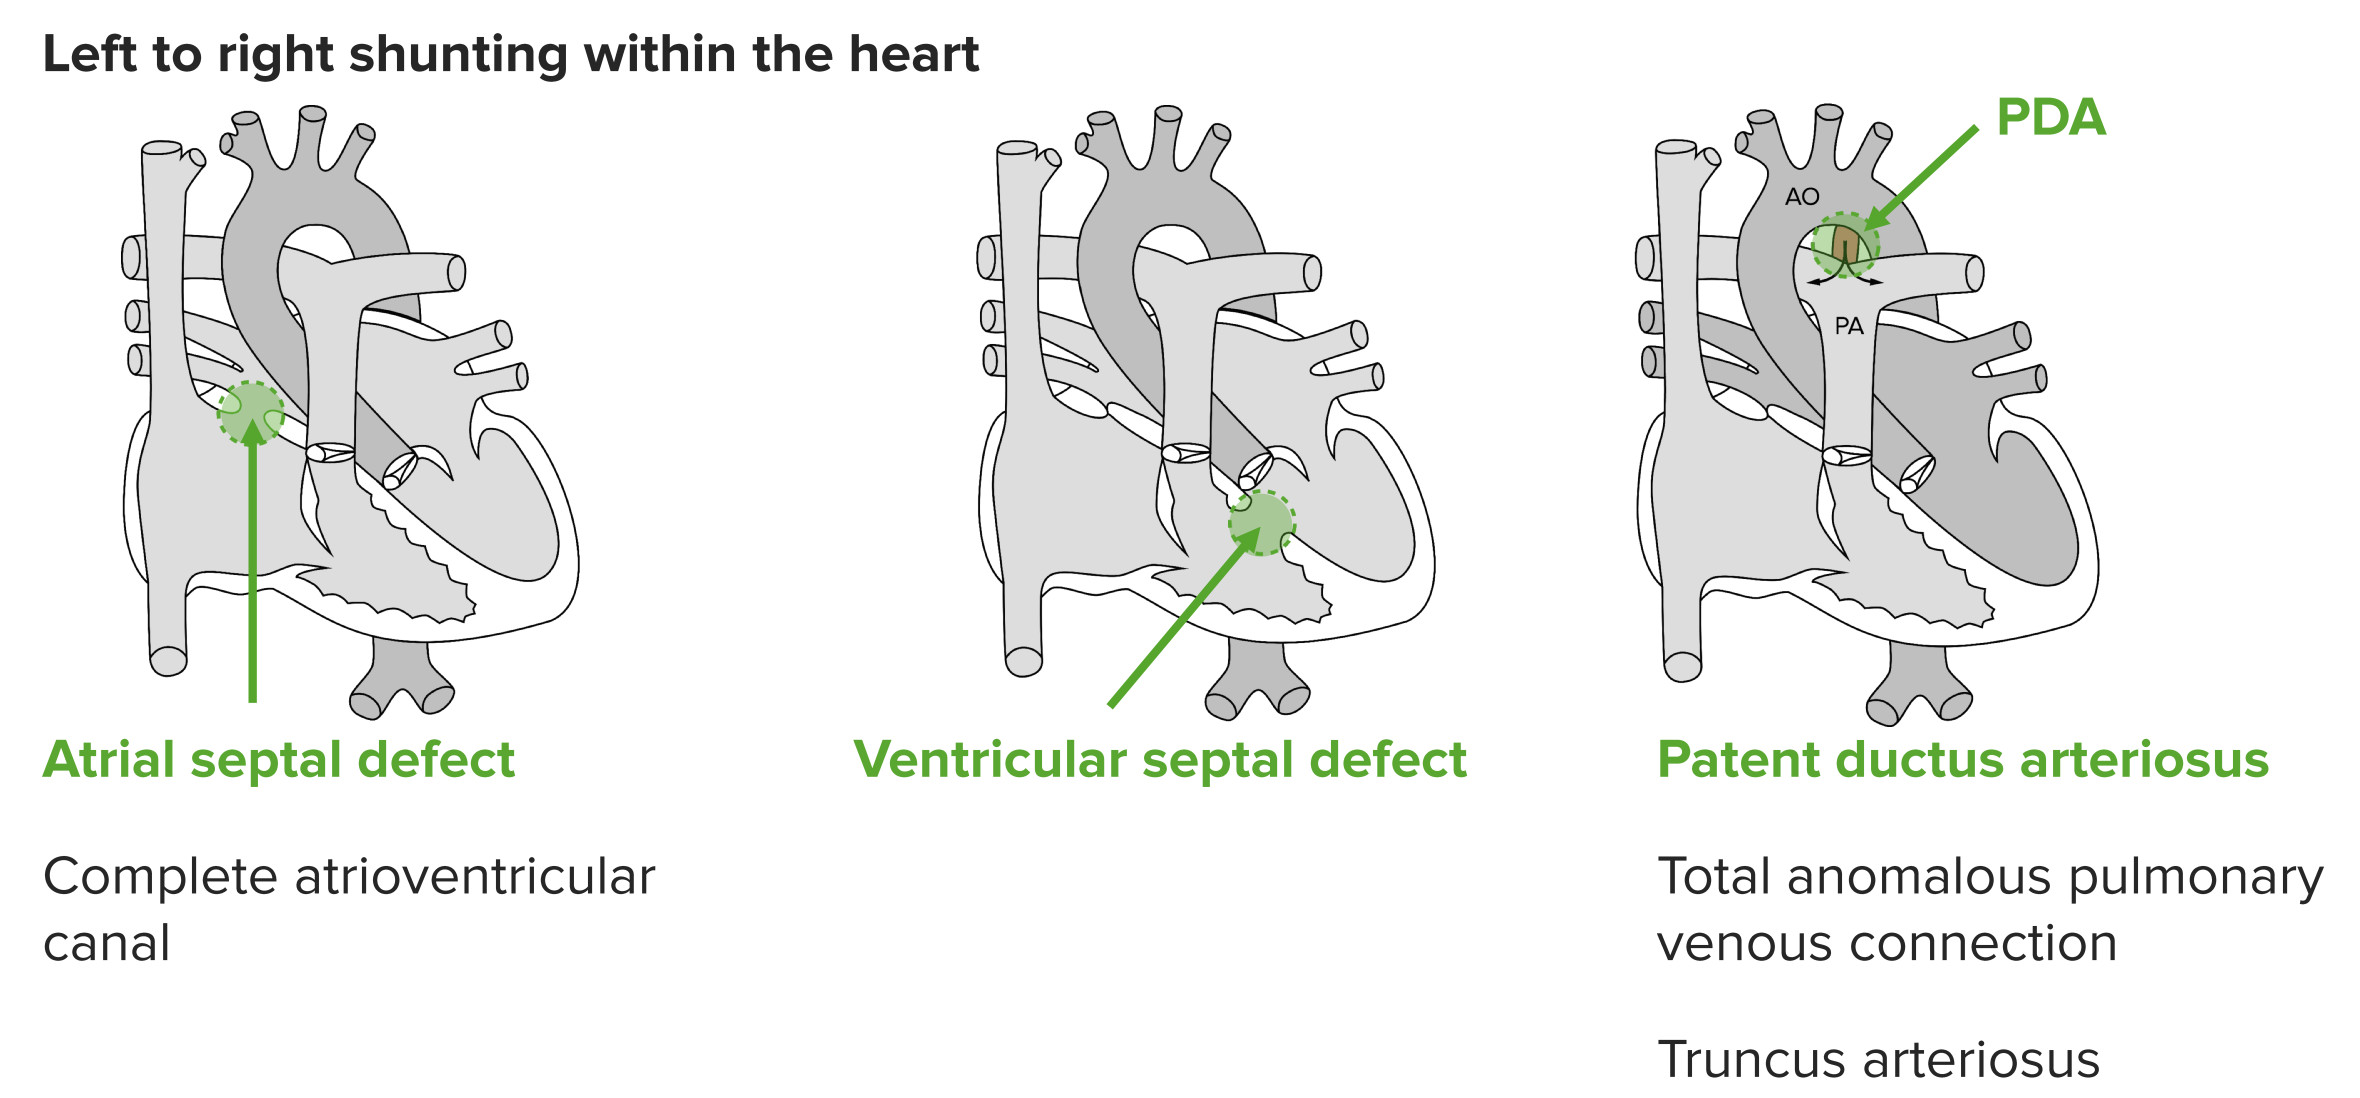 Bicuspid Aortic Valve Disease Symptoms And Treatment